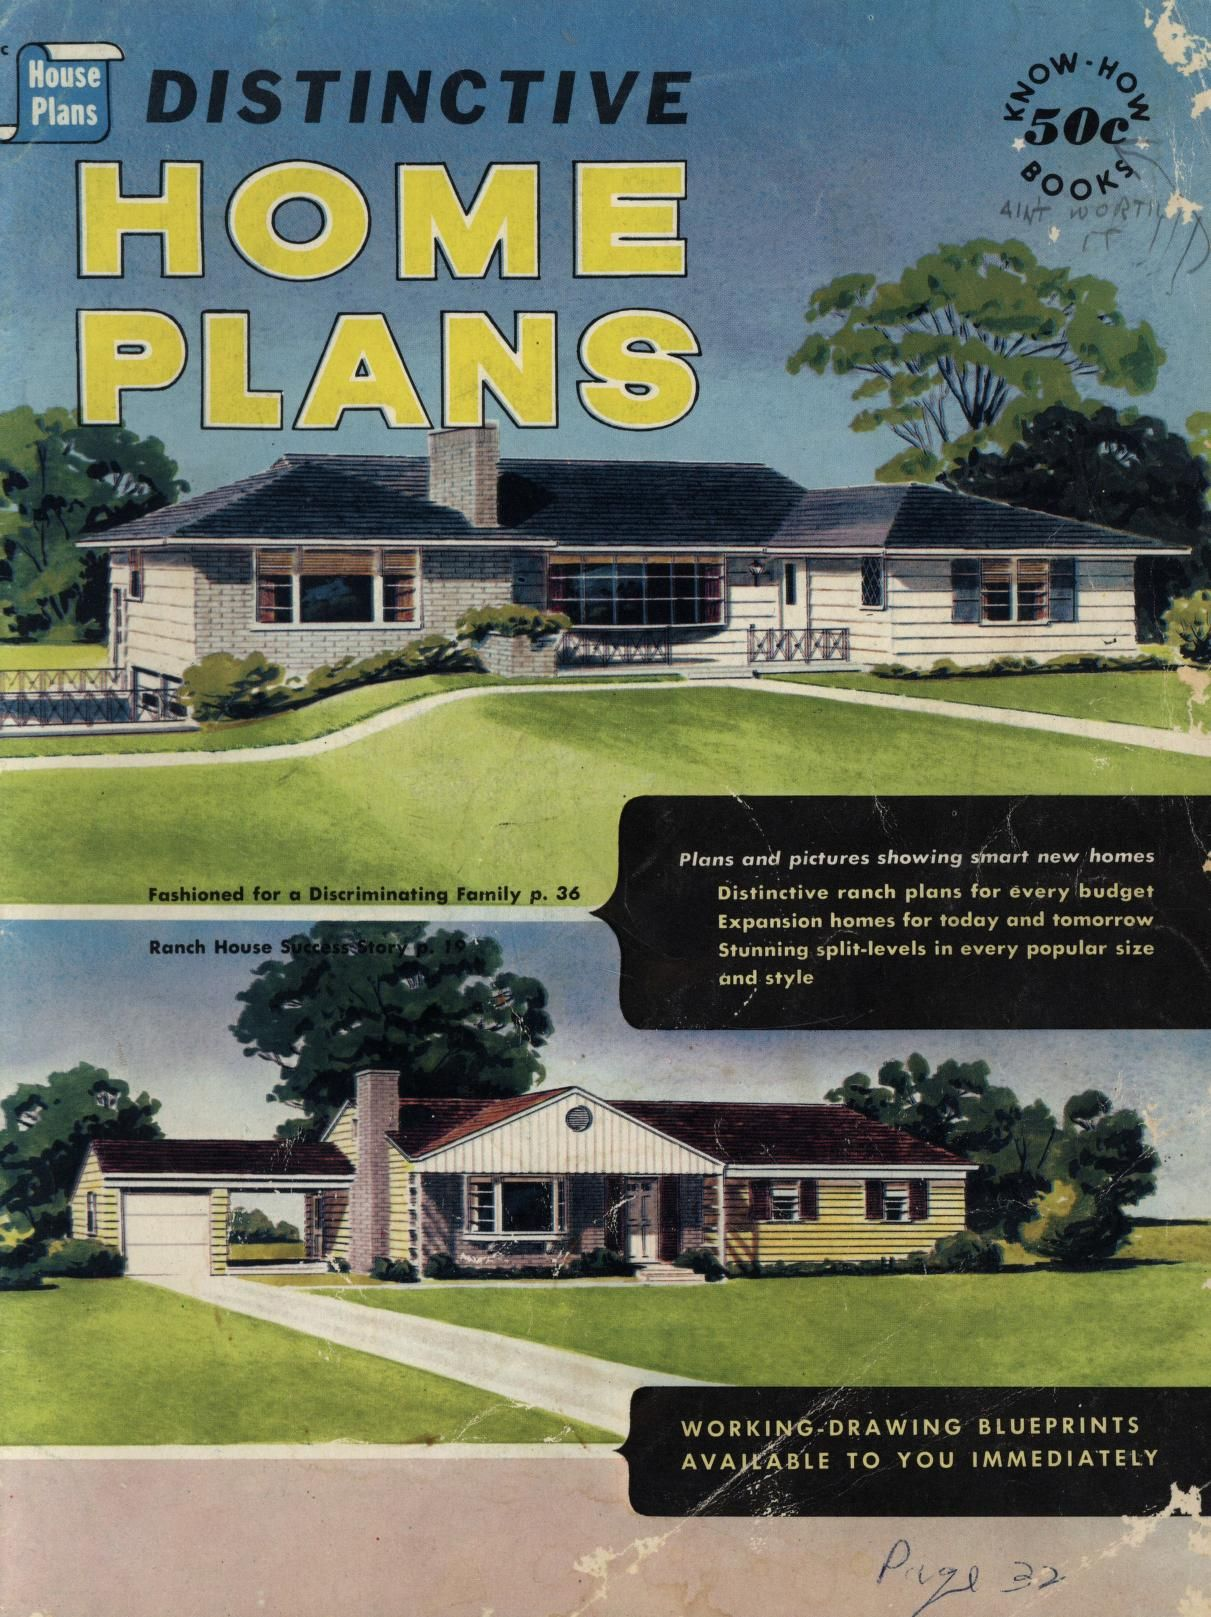 Home Plan Headquarters, Inc. From The Association For Preservation  Technology (APT)   Building Technology Heritage Library, An Online Archive  Of Period ...